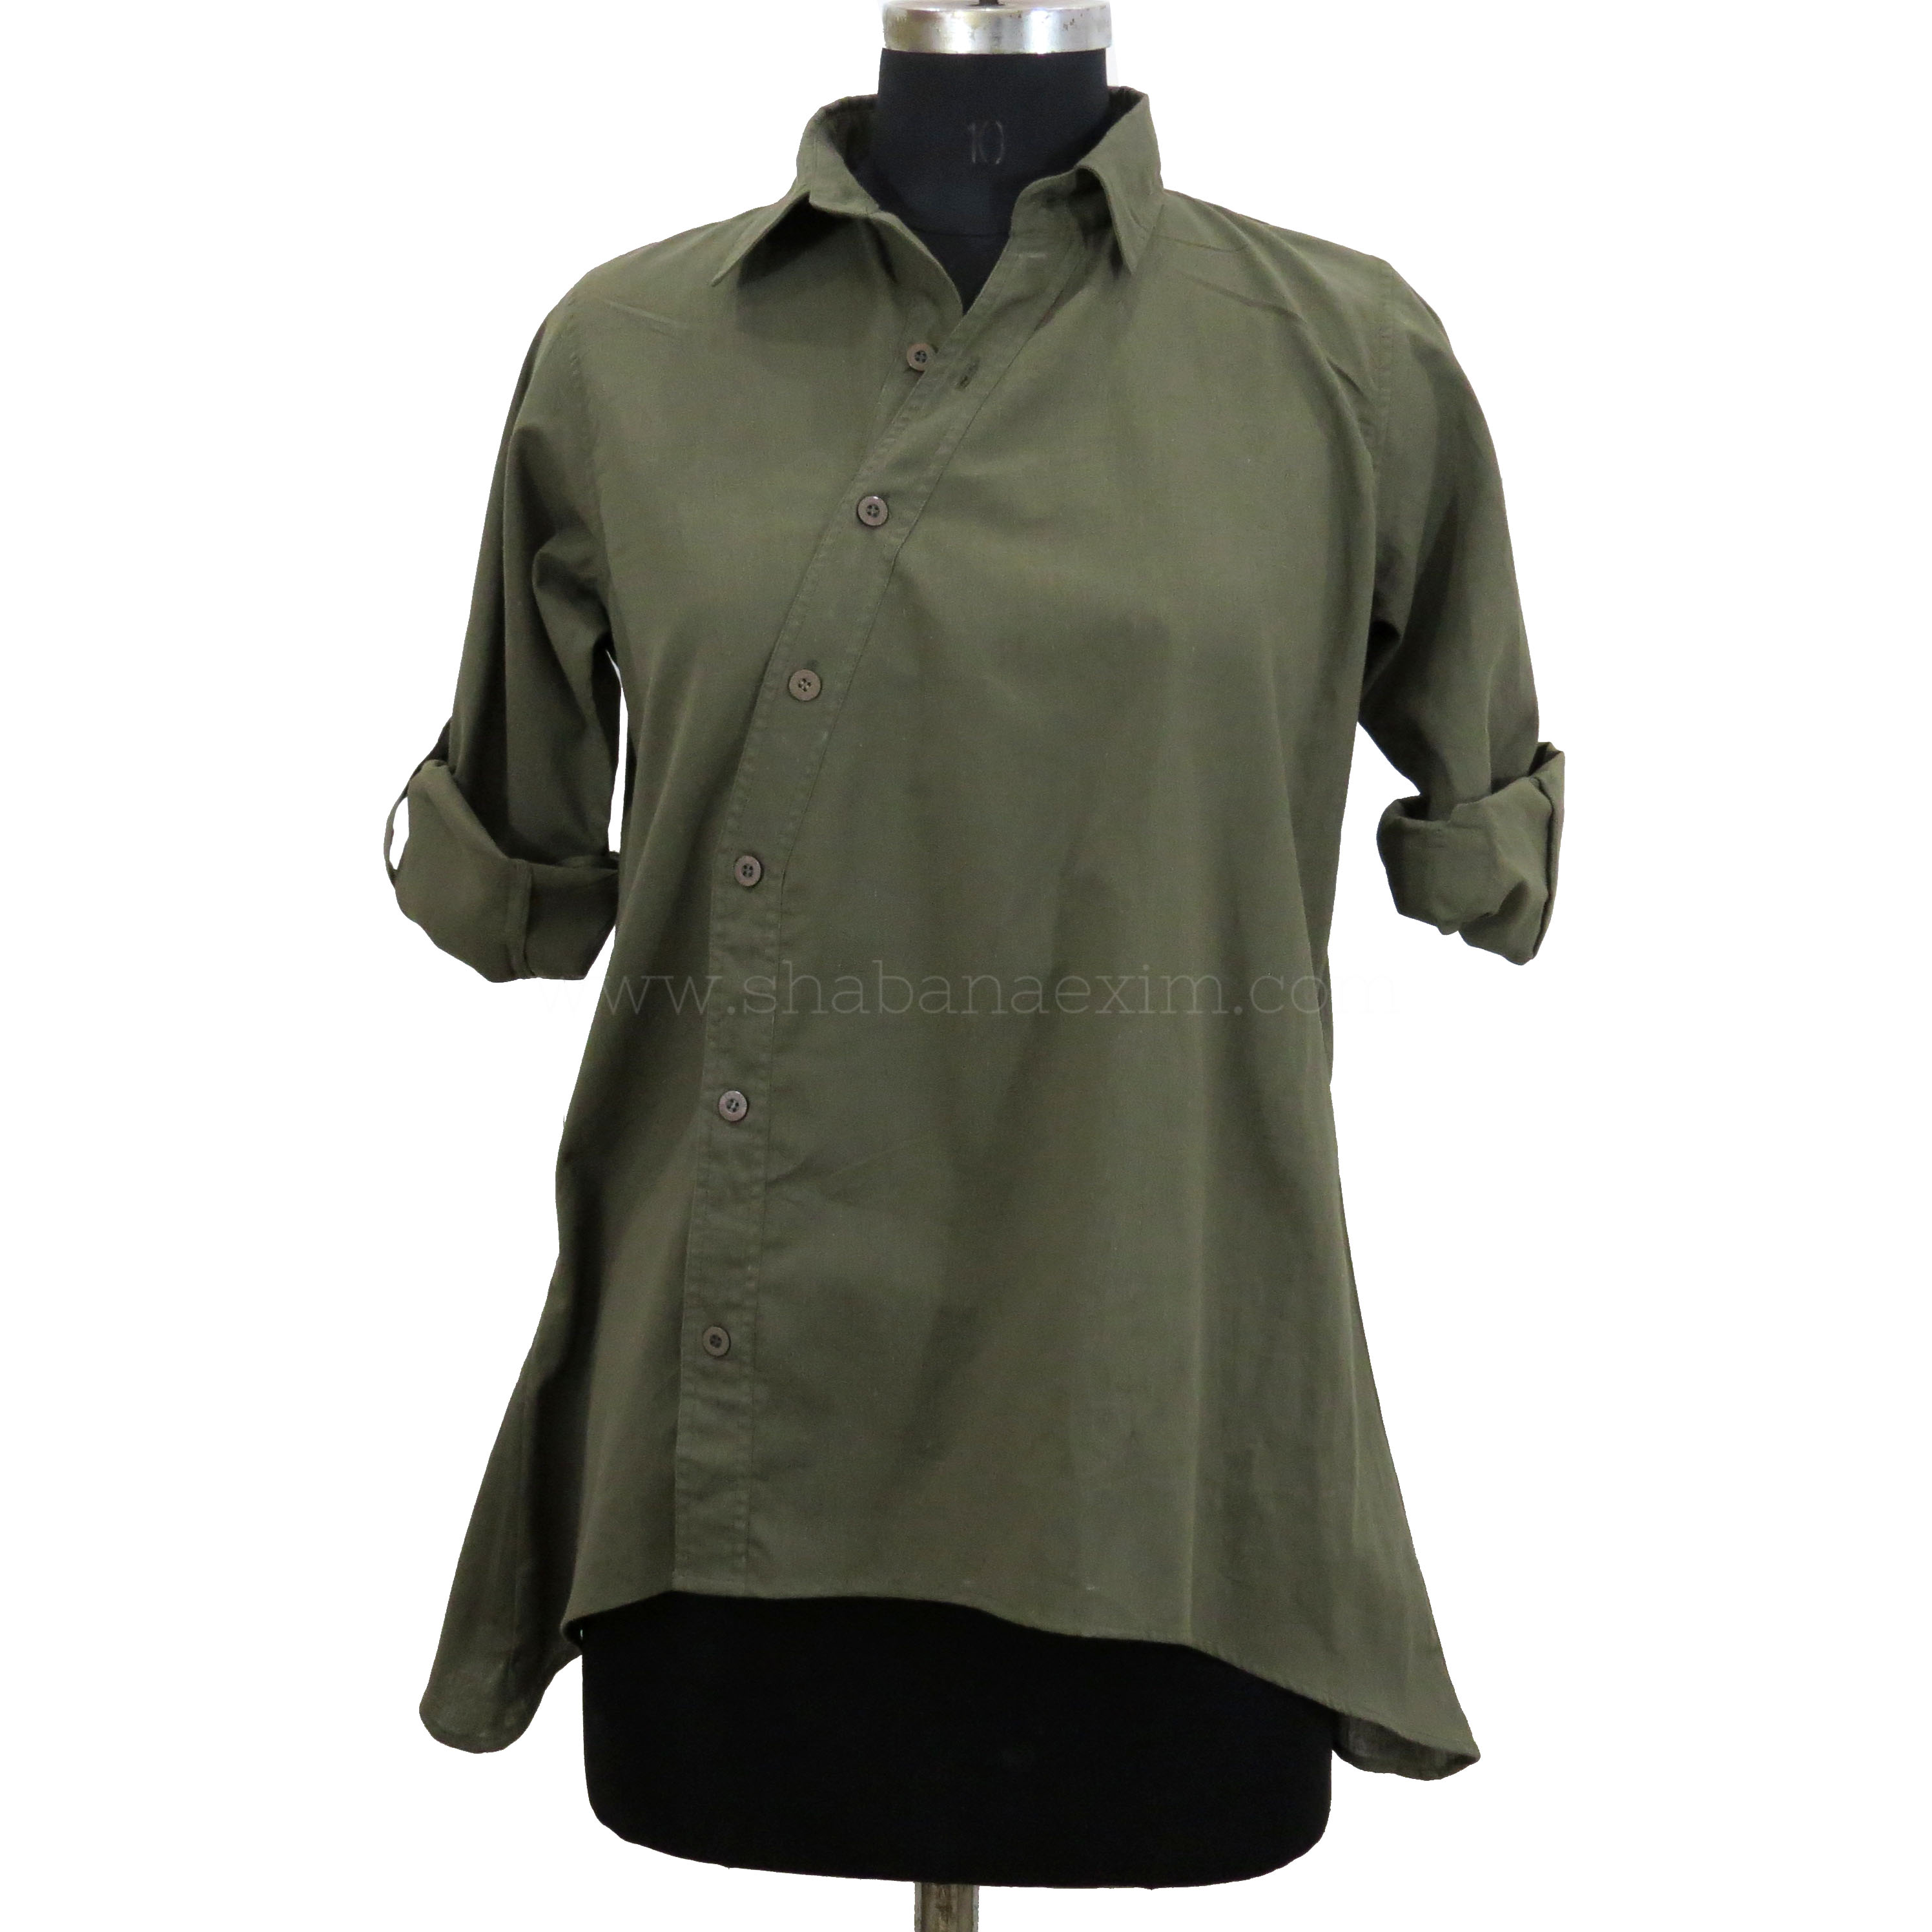 Khaki ladies shirts tops designer formal shirts